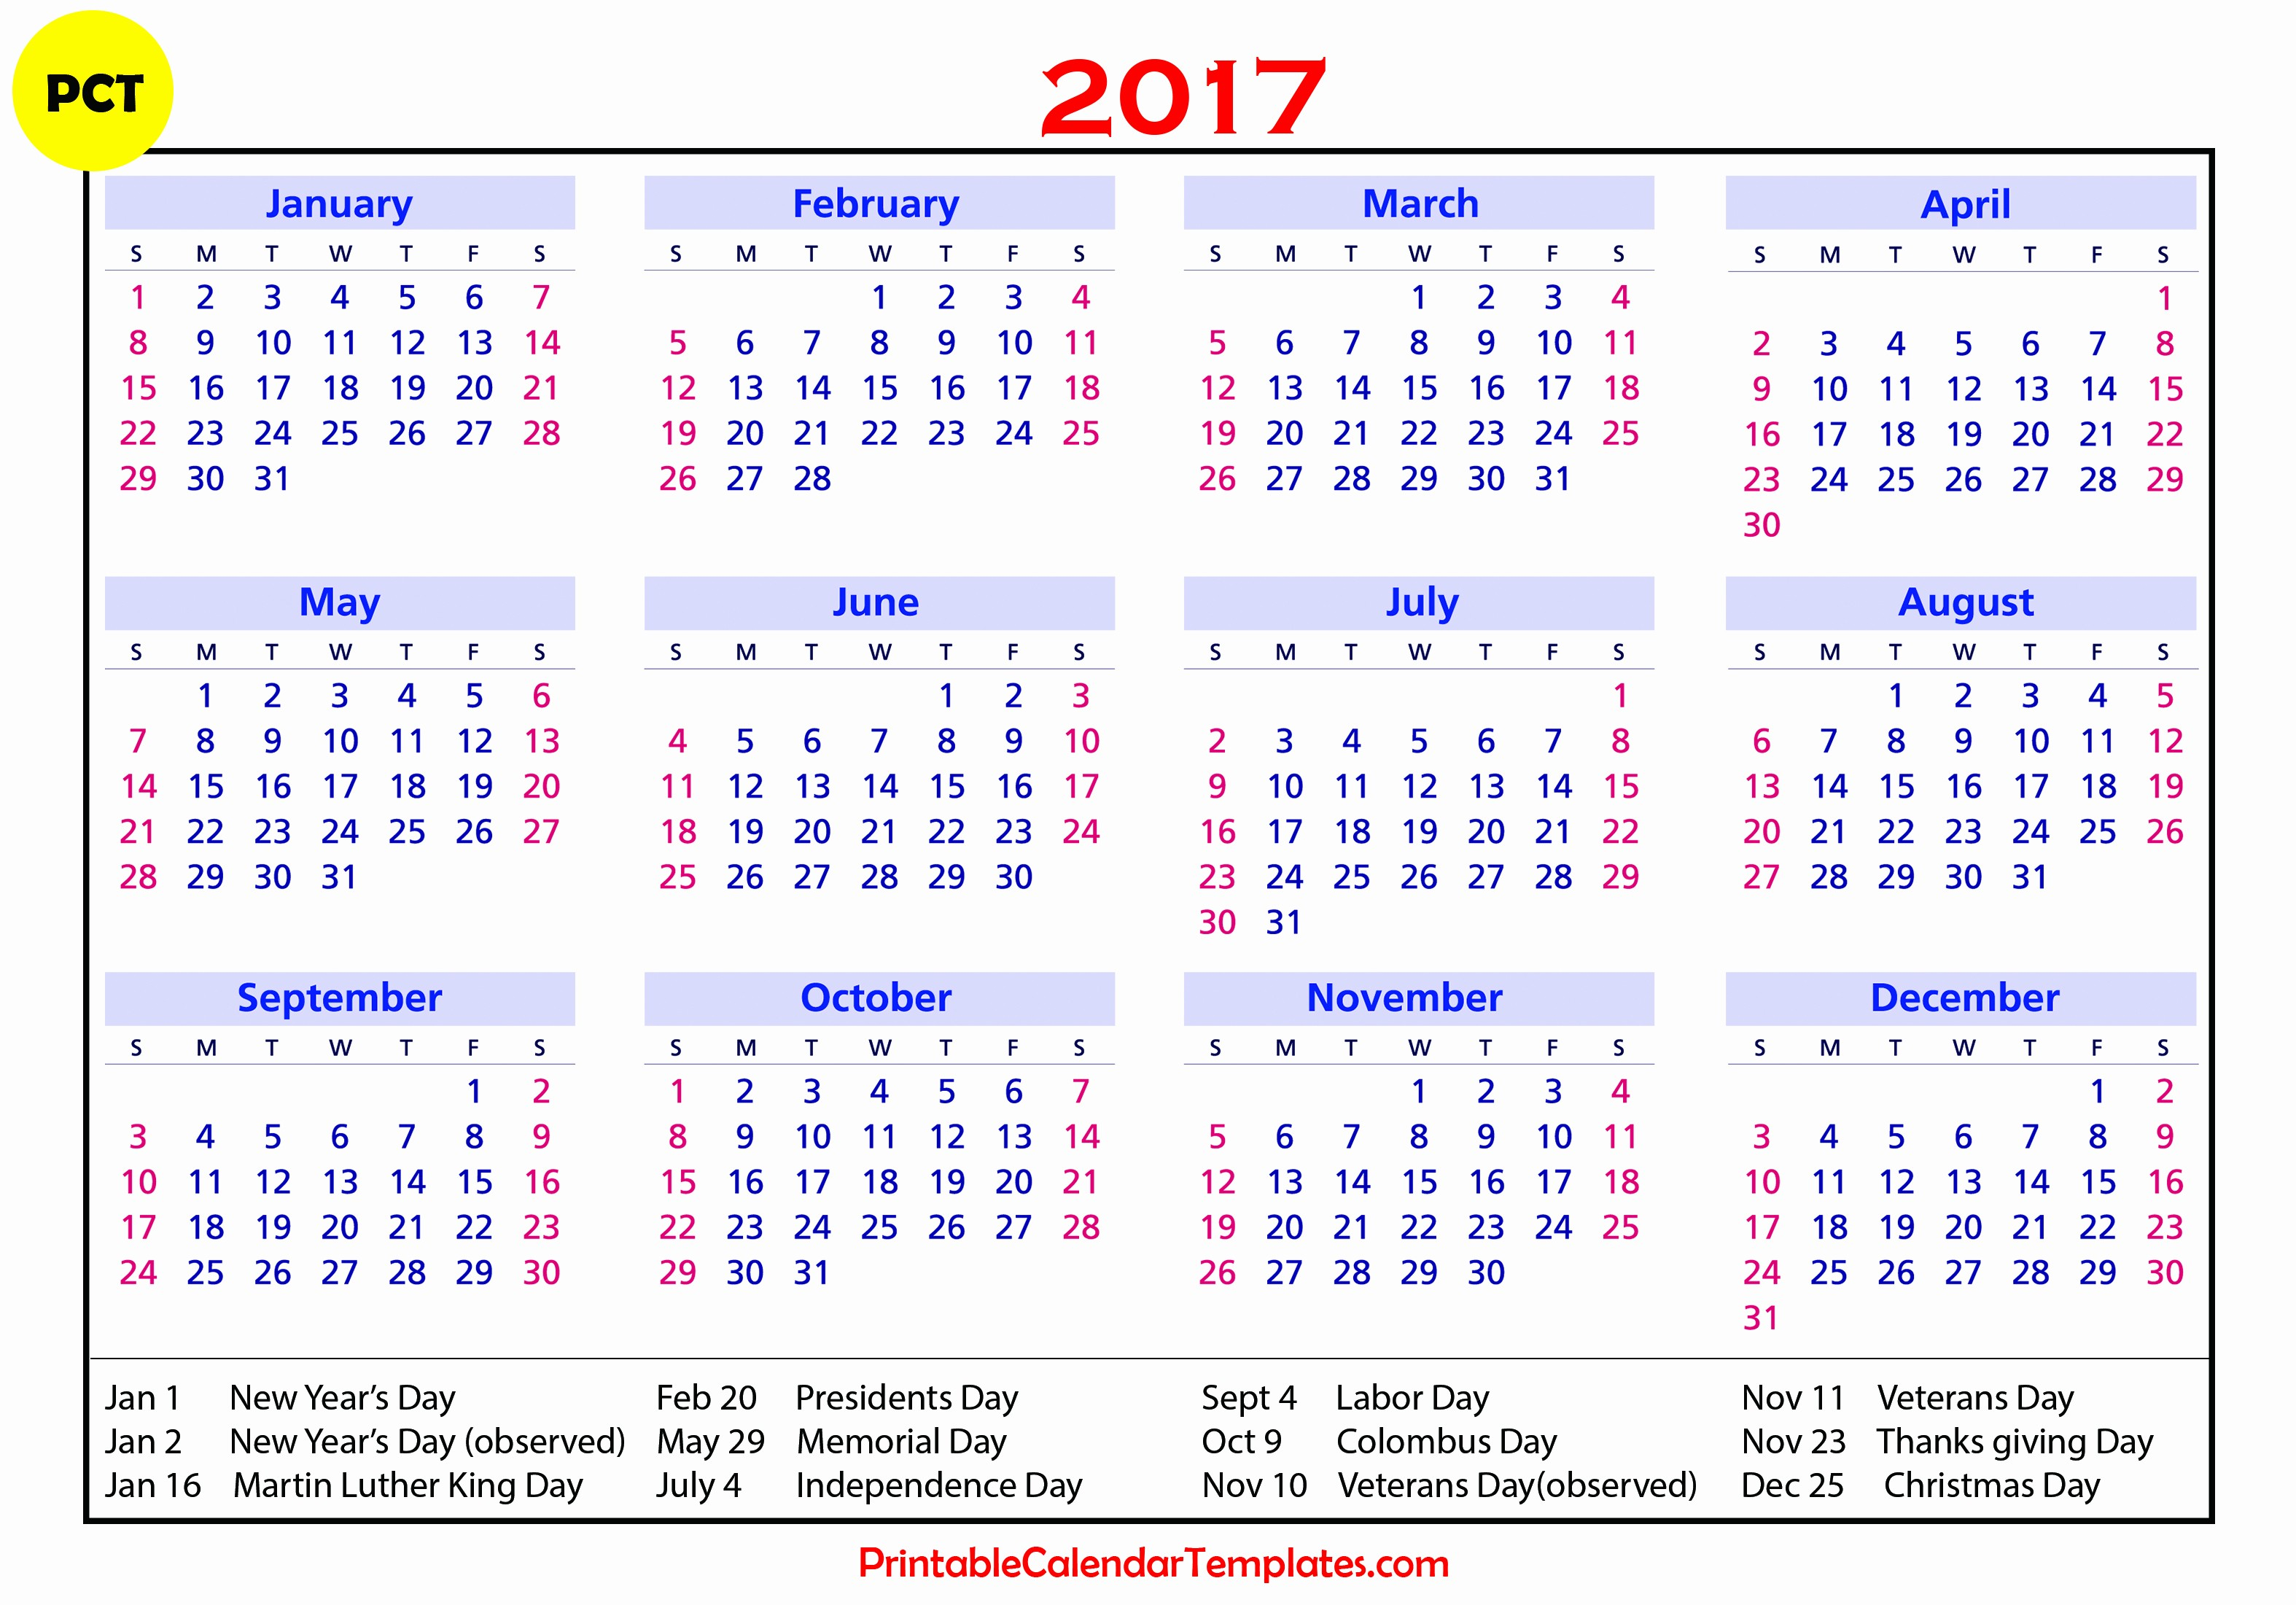 2017 Weekly Calendar with Holidays Awesome 2017 Calendar with Holidays